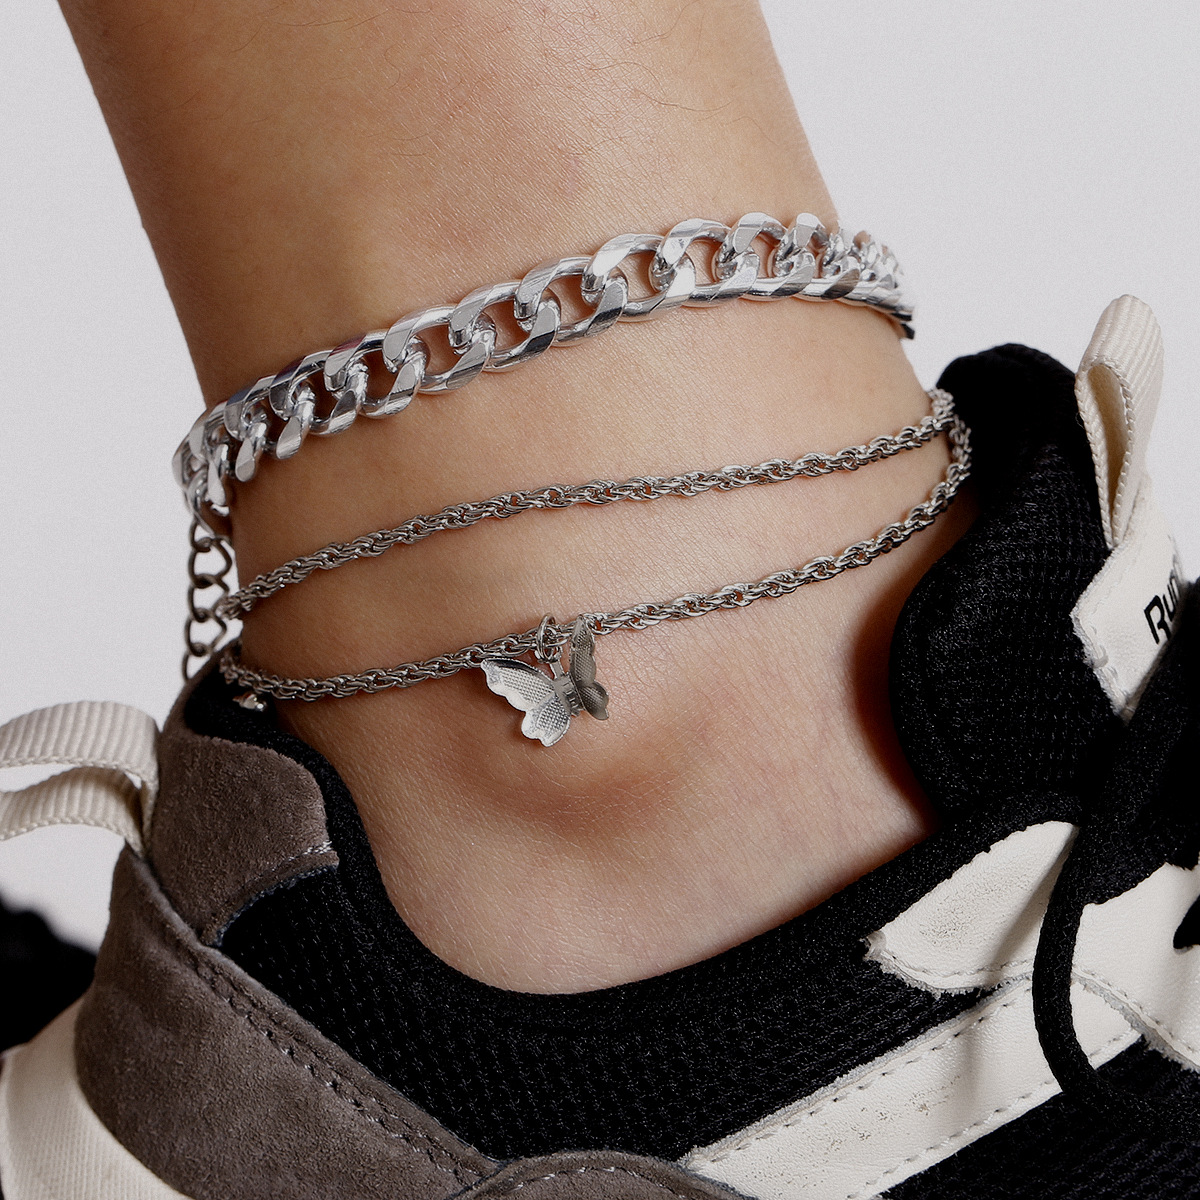 2020Fashion Jewelry Beach Butterfly Ankle Bracelets Adjustable Anklets Foot Chain Rope Ankle Bracelet For Women Girls